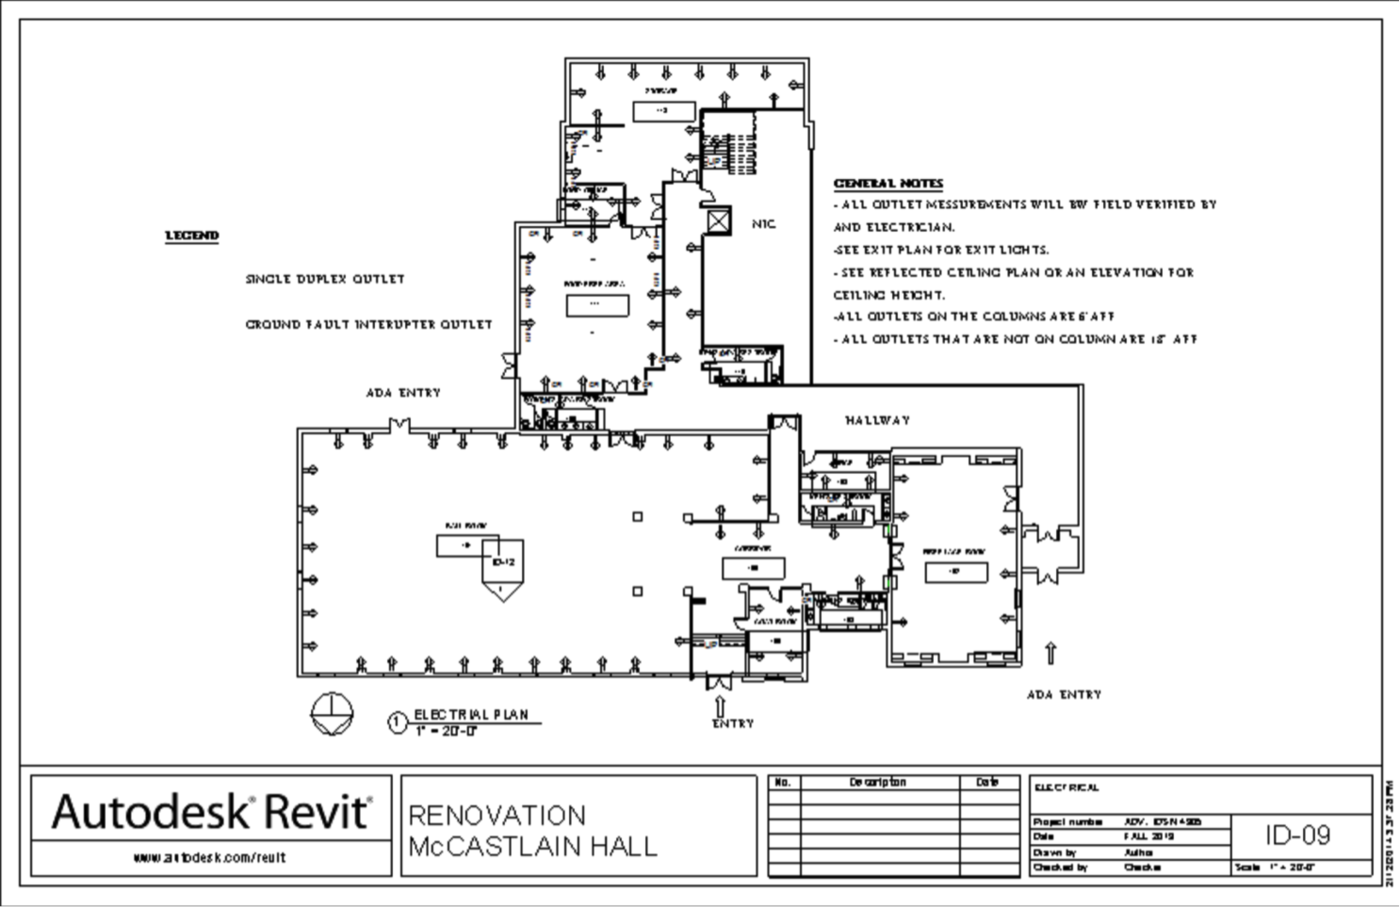 revit electrical plan pdf